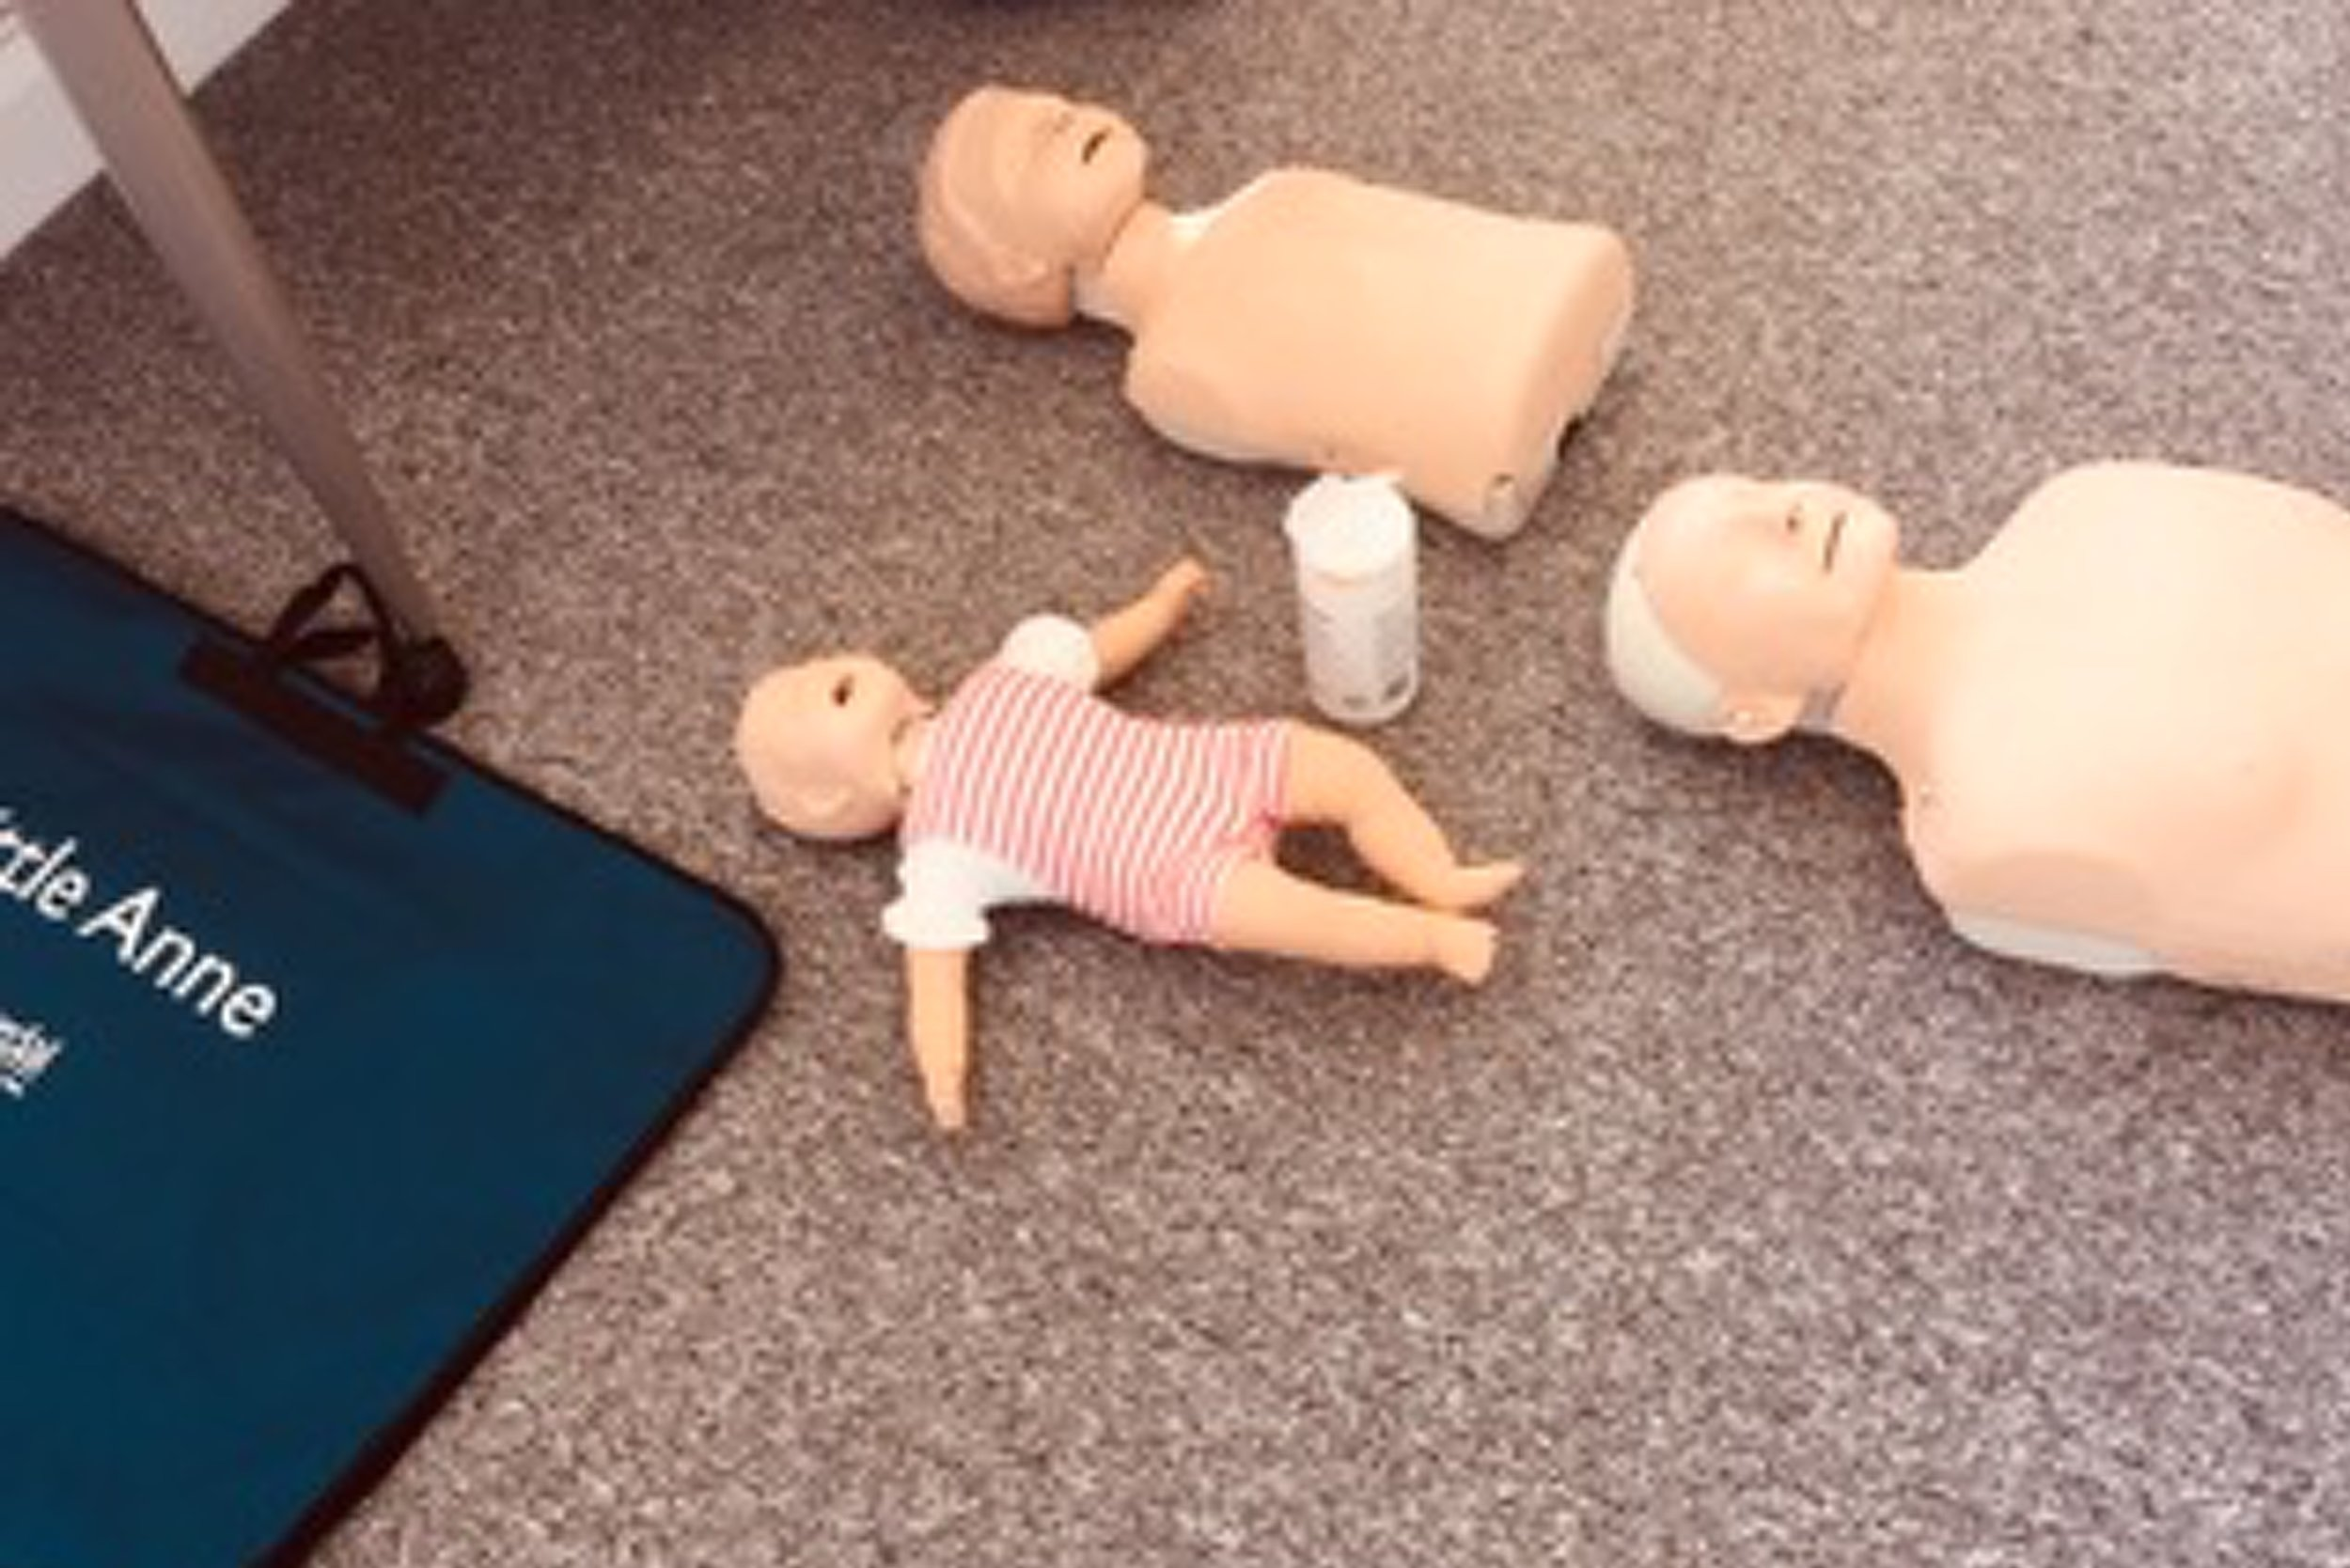 First Aid at Work and Paediatric First Aid - Combining the QA Level 3 Award in First Aid at Work (RQF) and the QA Level 3 Award in Paediatric First Aid (RQF) into 3 extended days of classroom learning.